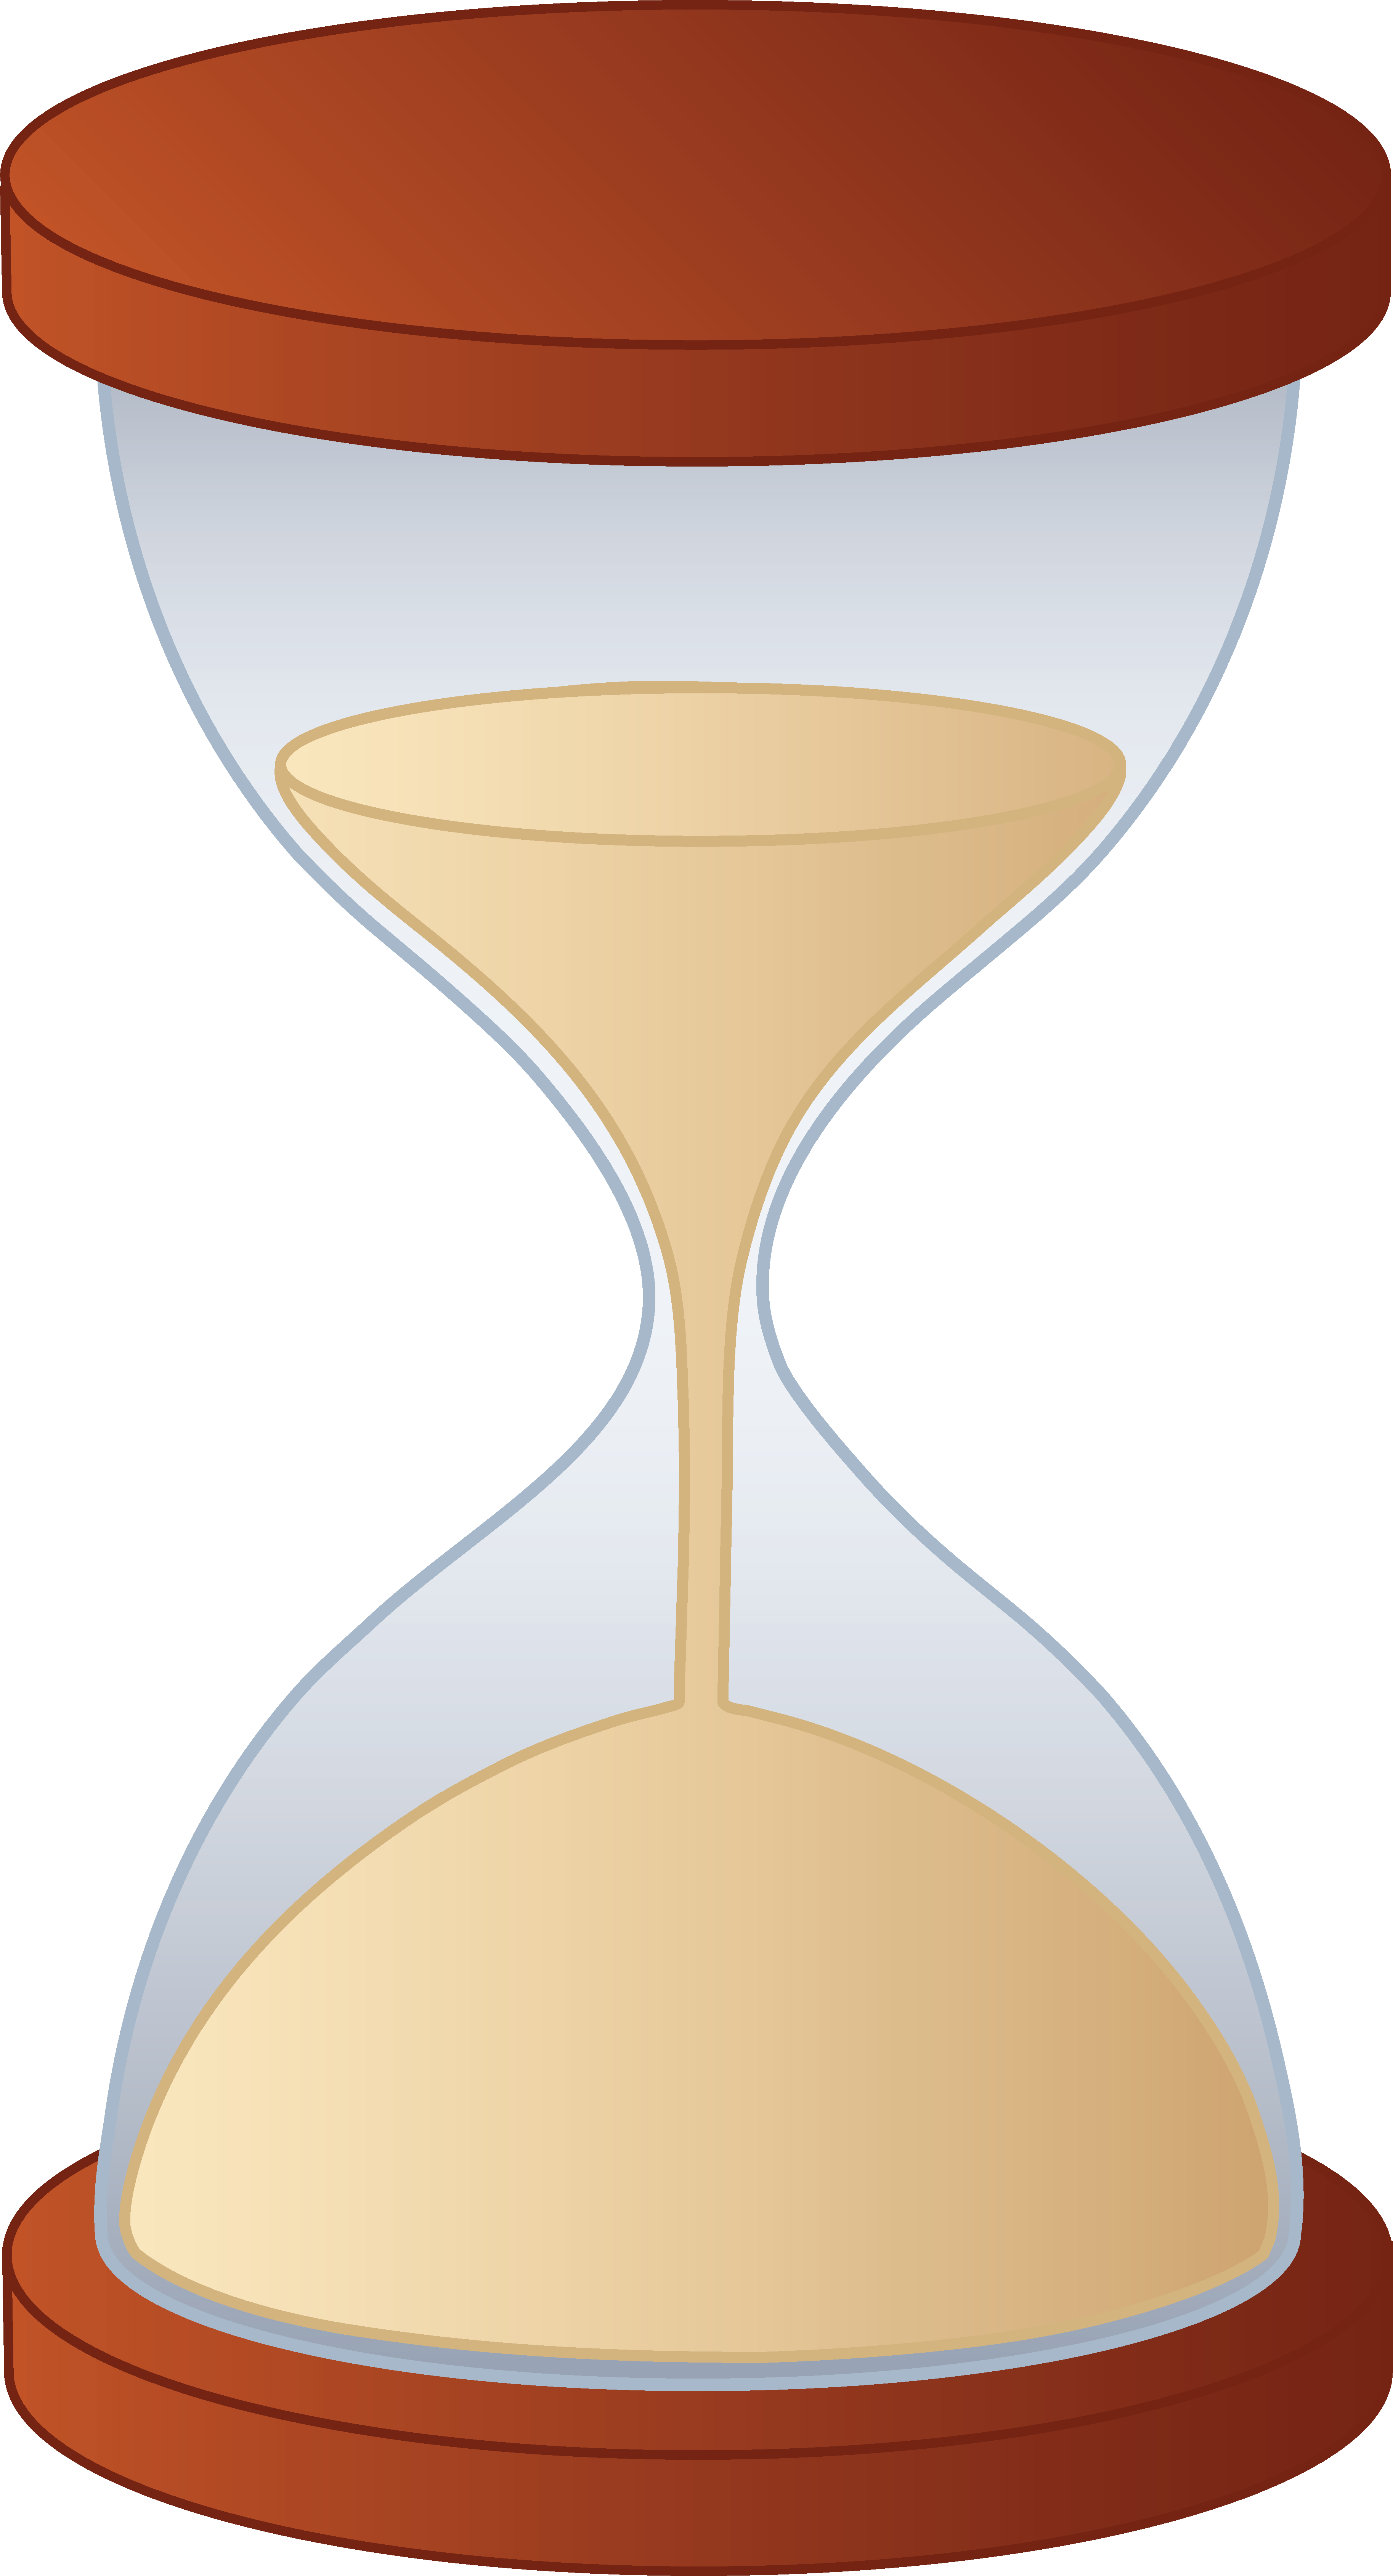 Hourglass PNG Clipart - Hourglass PNG HD